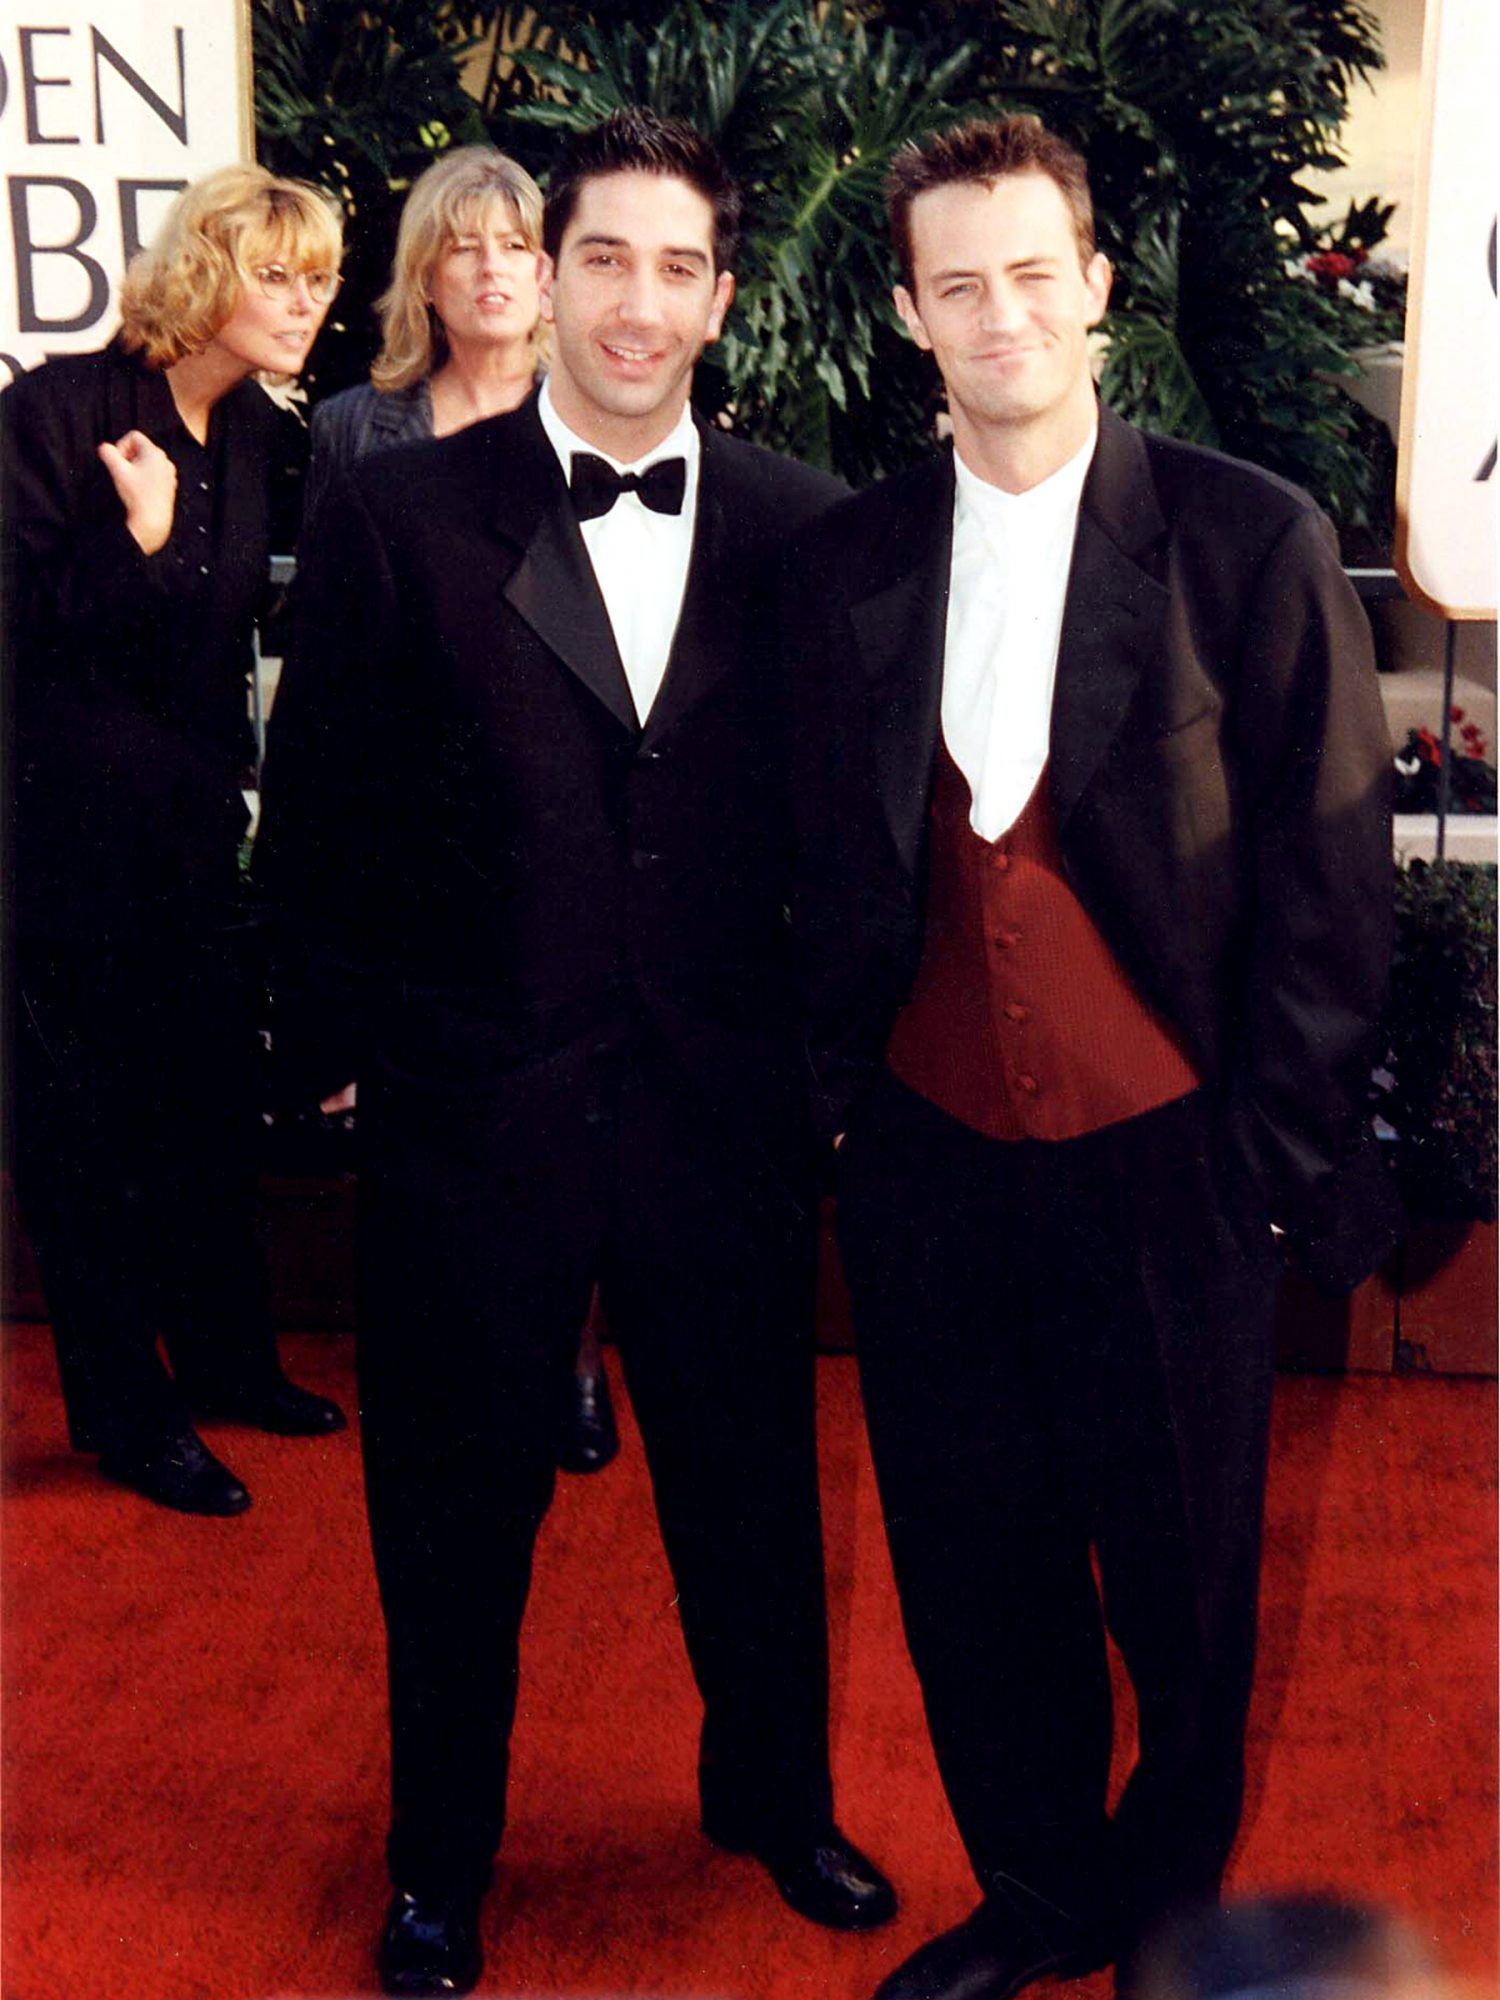 Friends' David Schwimmer and Matthew Perry